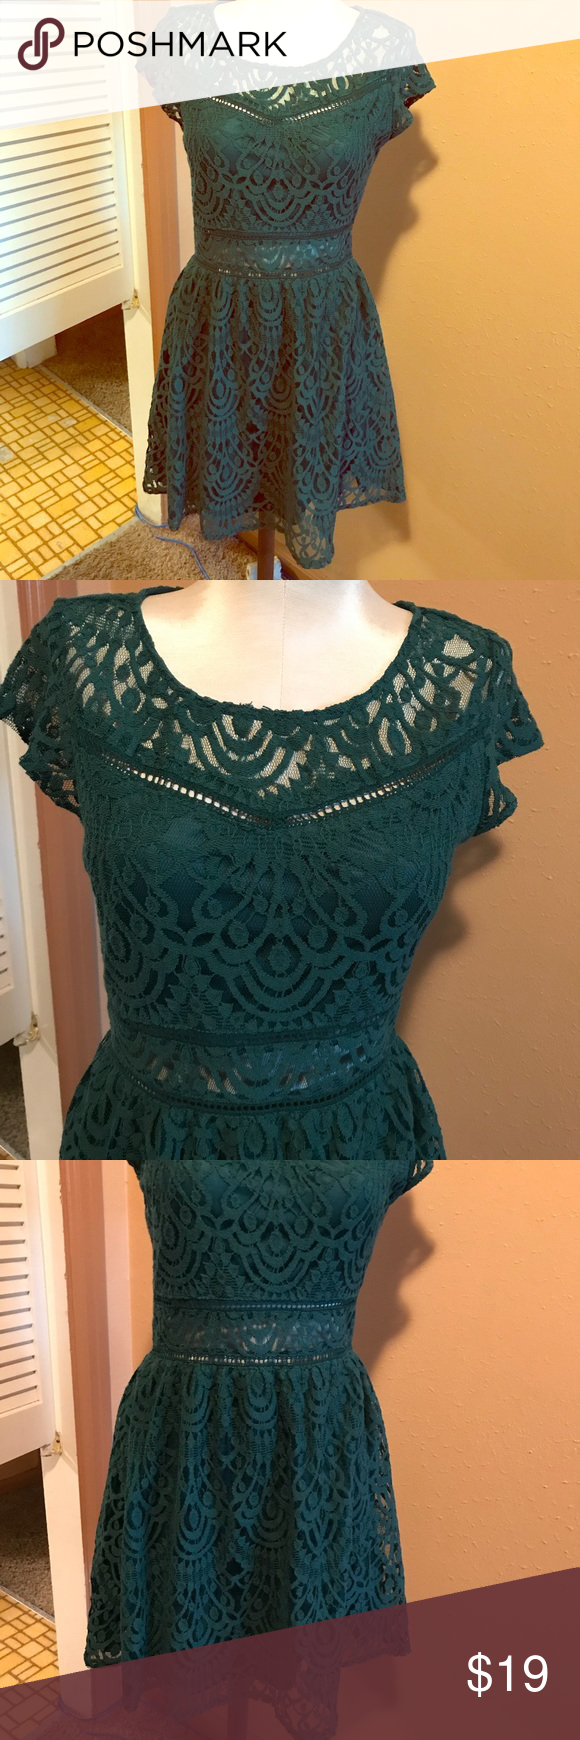 H&m green lace dress  HuM Divided Dress  Lace Green Short Sleeve NWT NWT